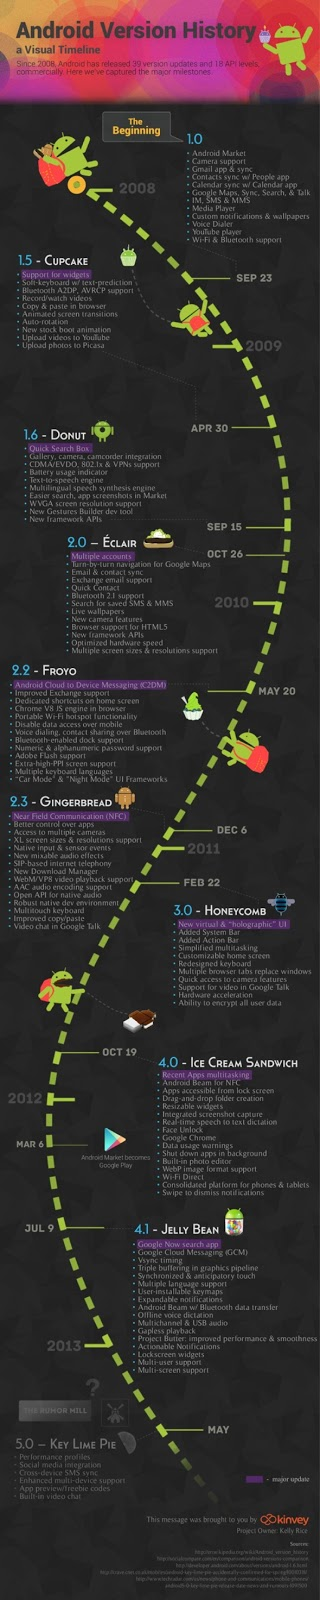 Google's Android Version History